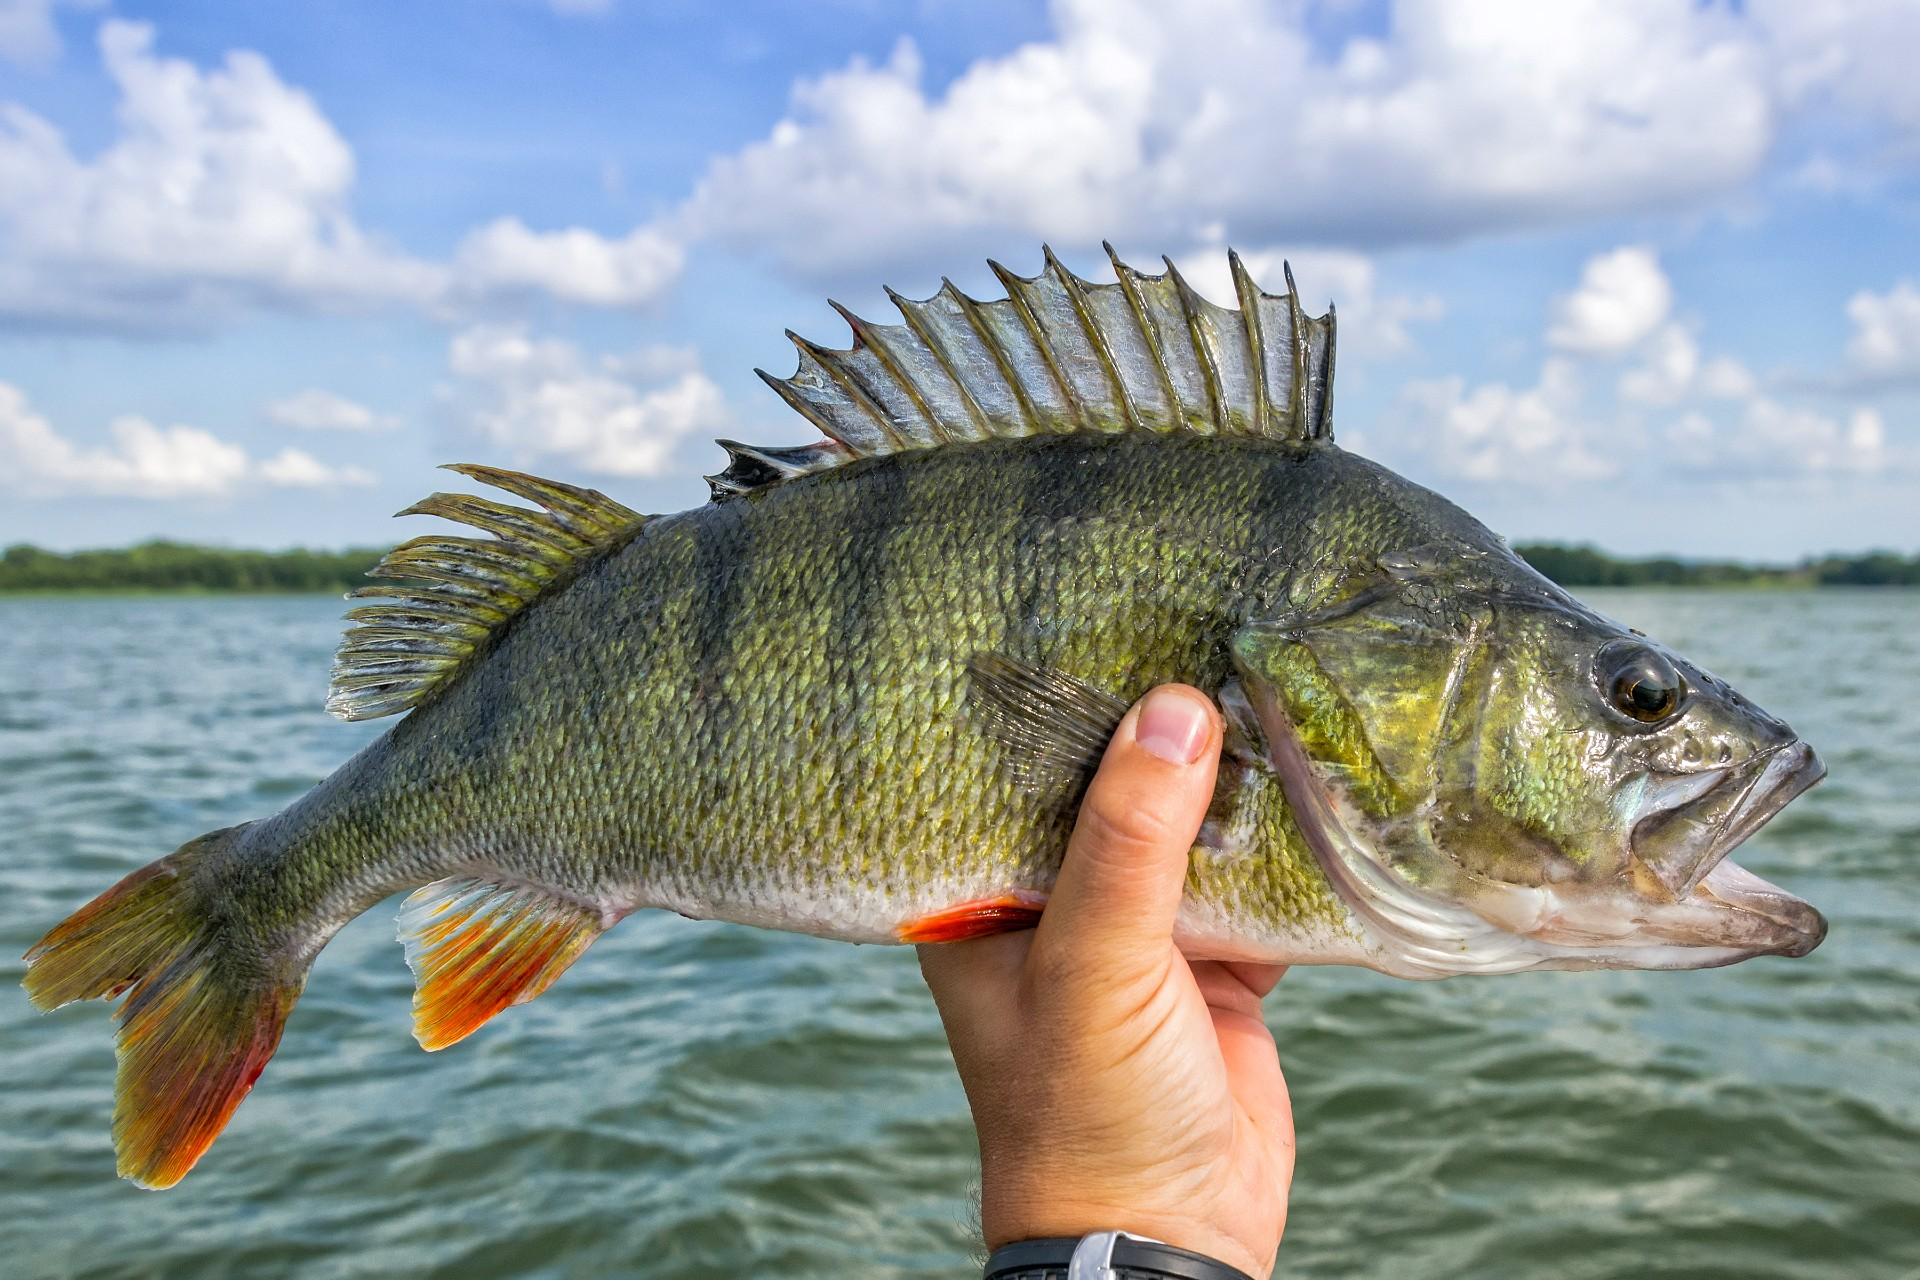 Huge Perch Fish from the Lake